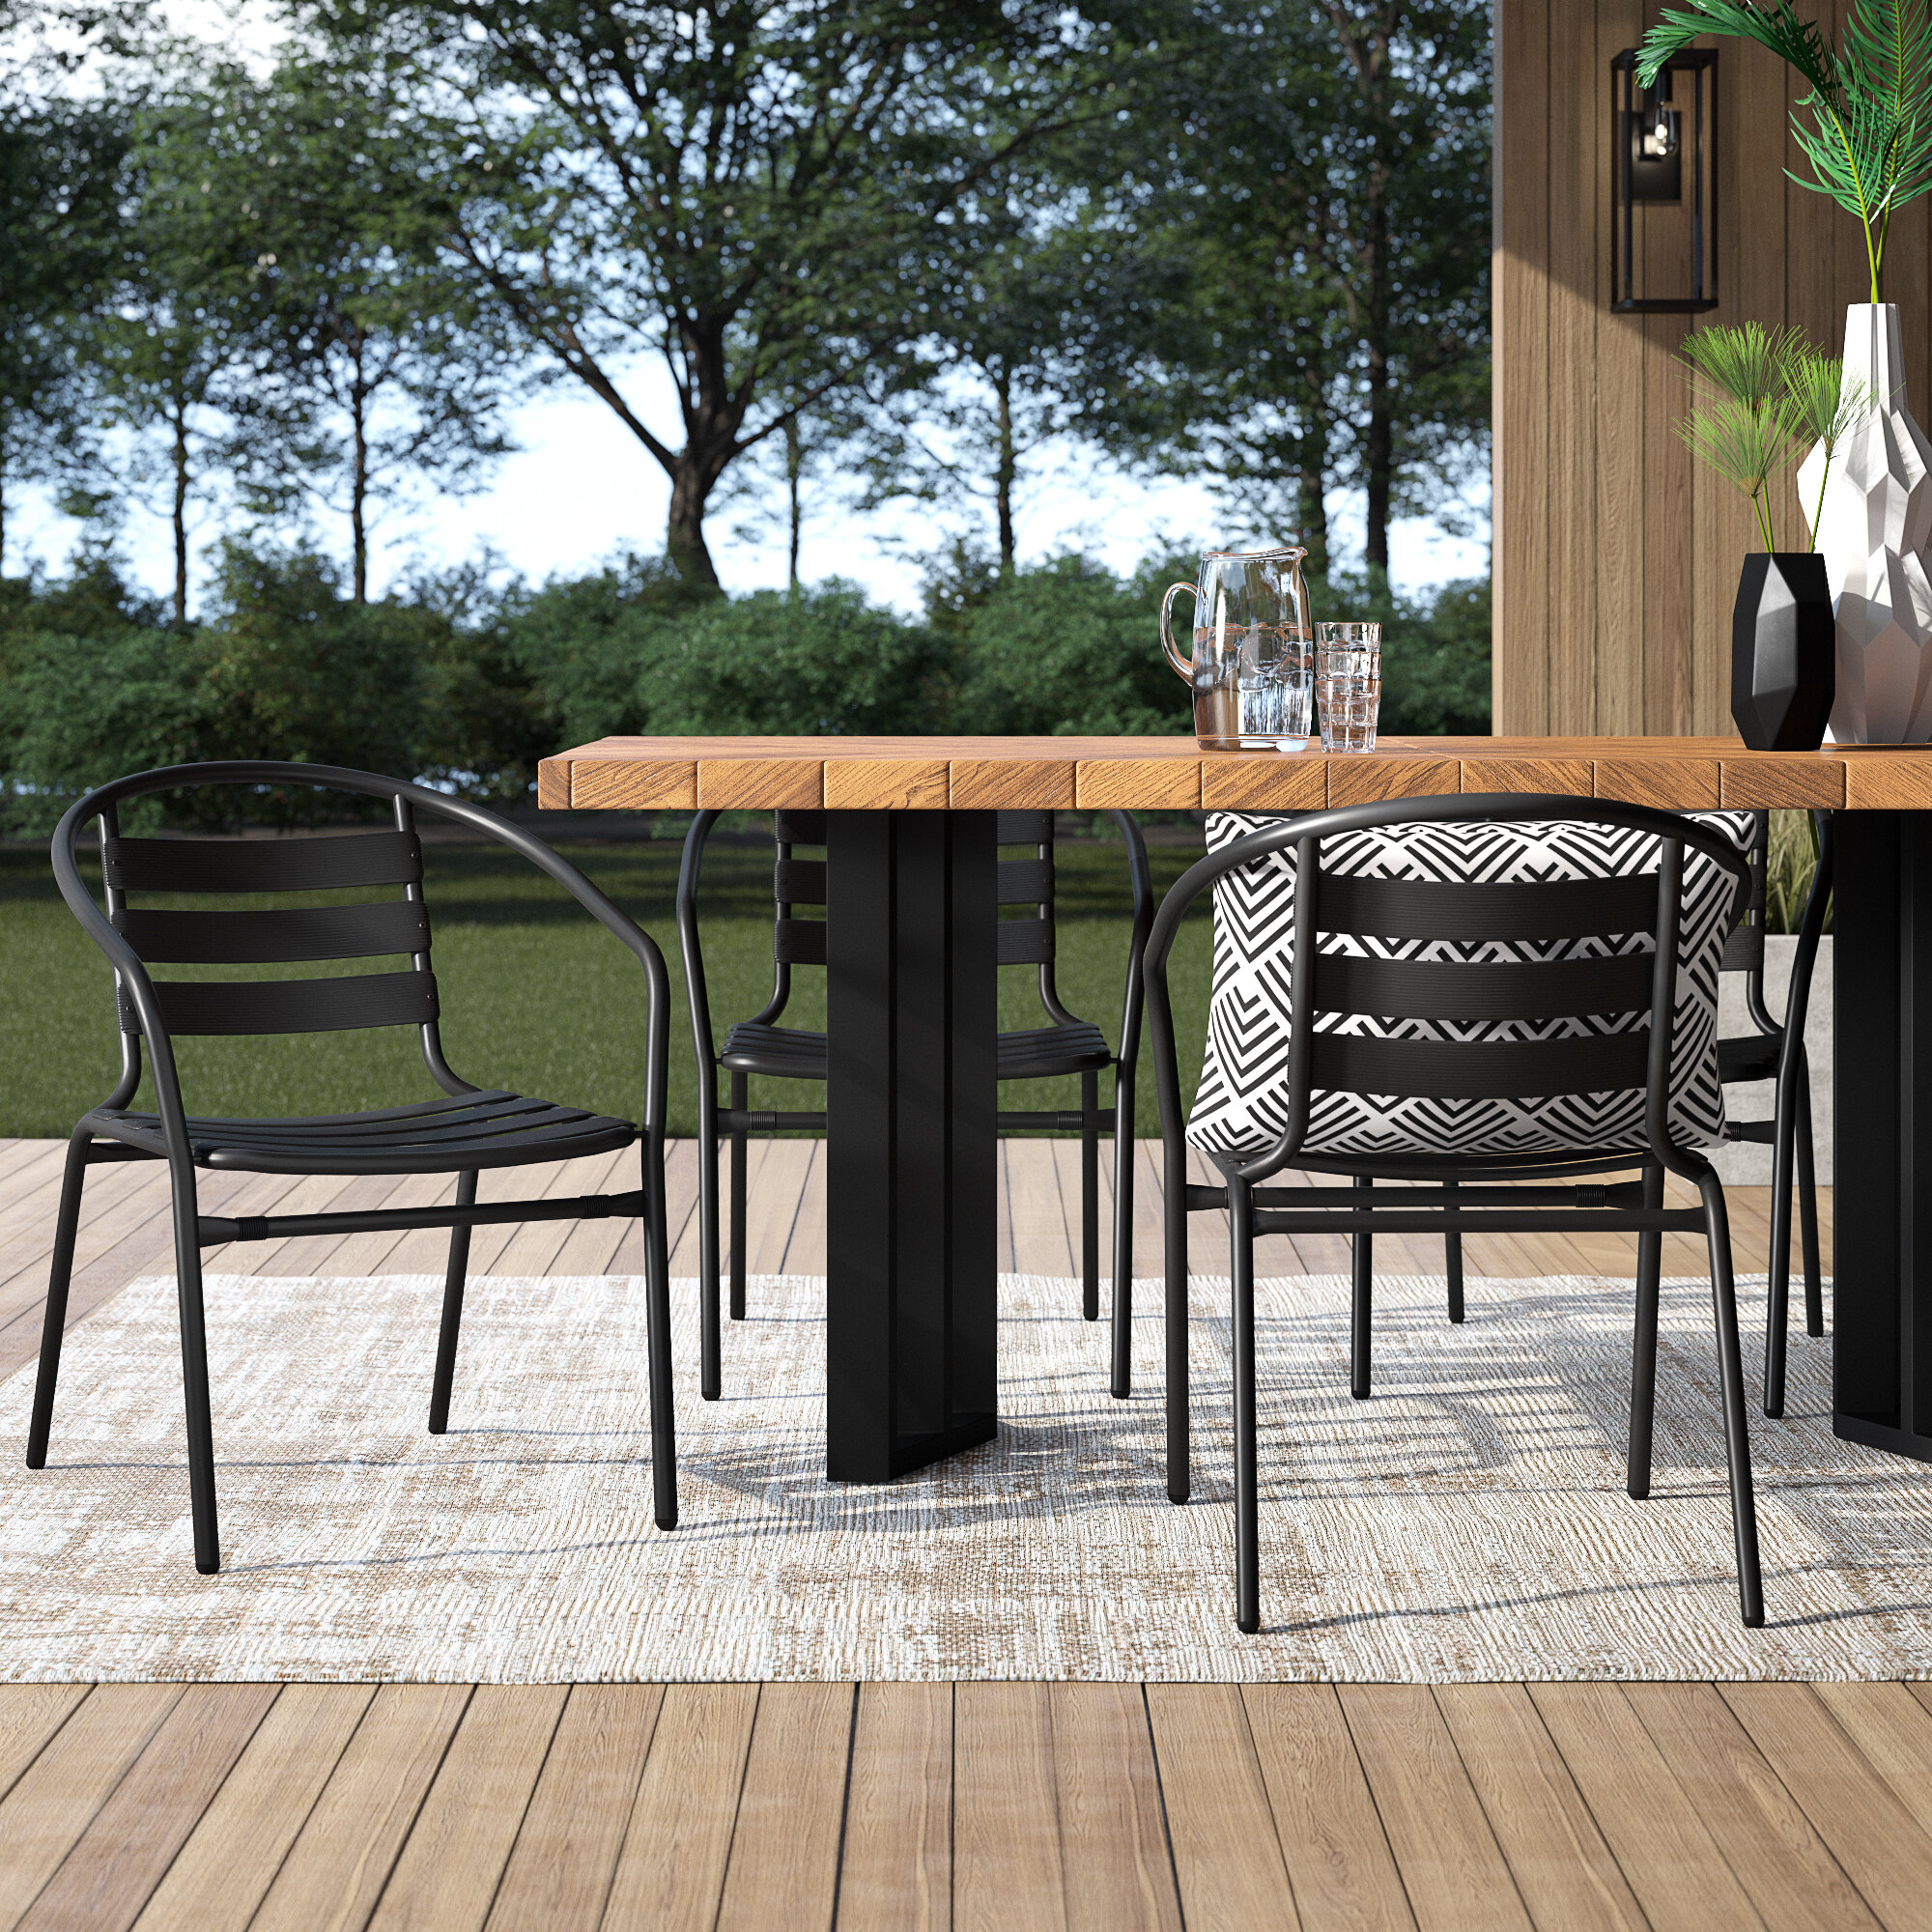 Fabulous Corrales Stacking Patio Dining Chair Unemploymentrelief Wooden Chair Designs For Living Room Unemploymentrelieforg